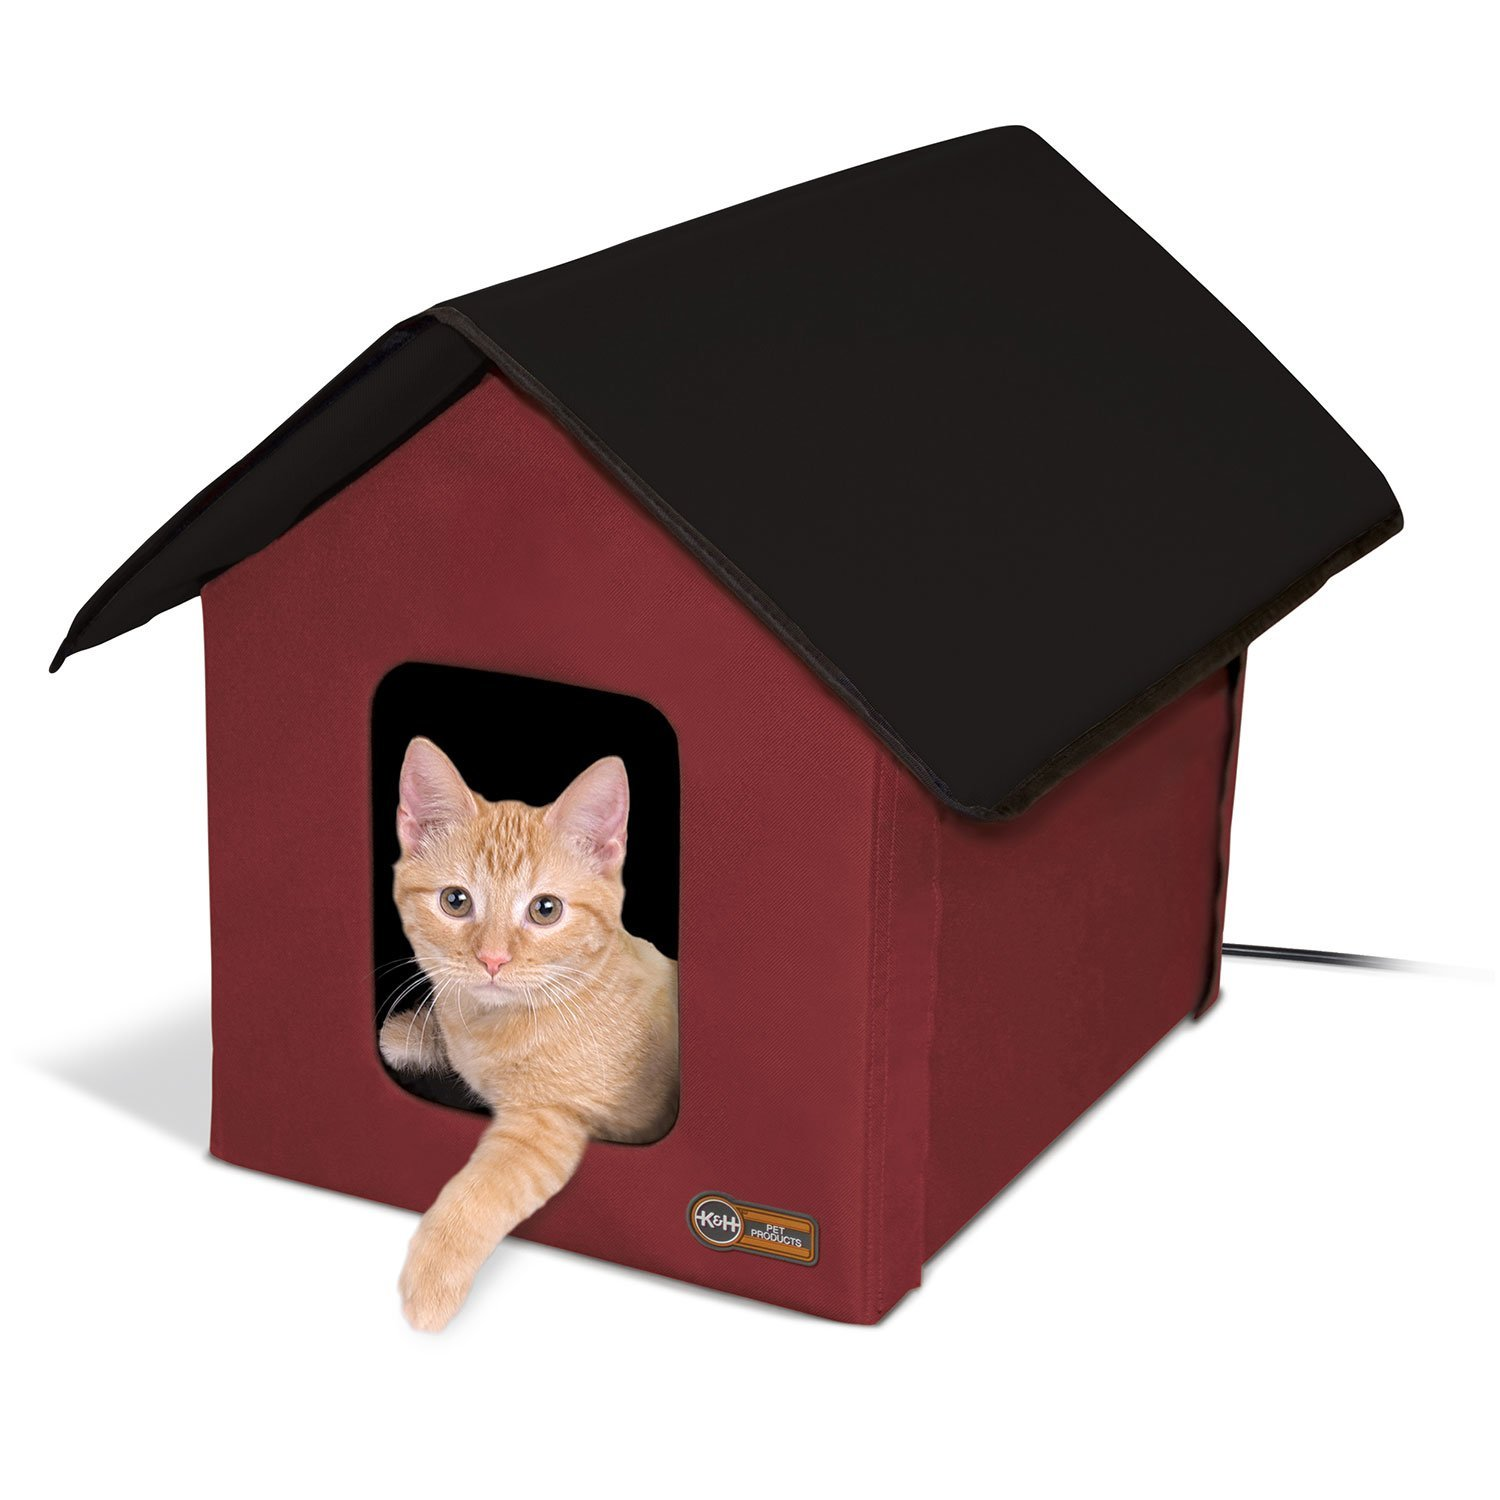 "Primary image for K&H Pet Products Outdoor Heated Kitty House Barn Red / Black 22"" x 18"" x 17"""